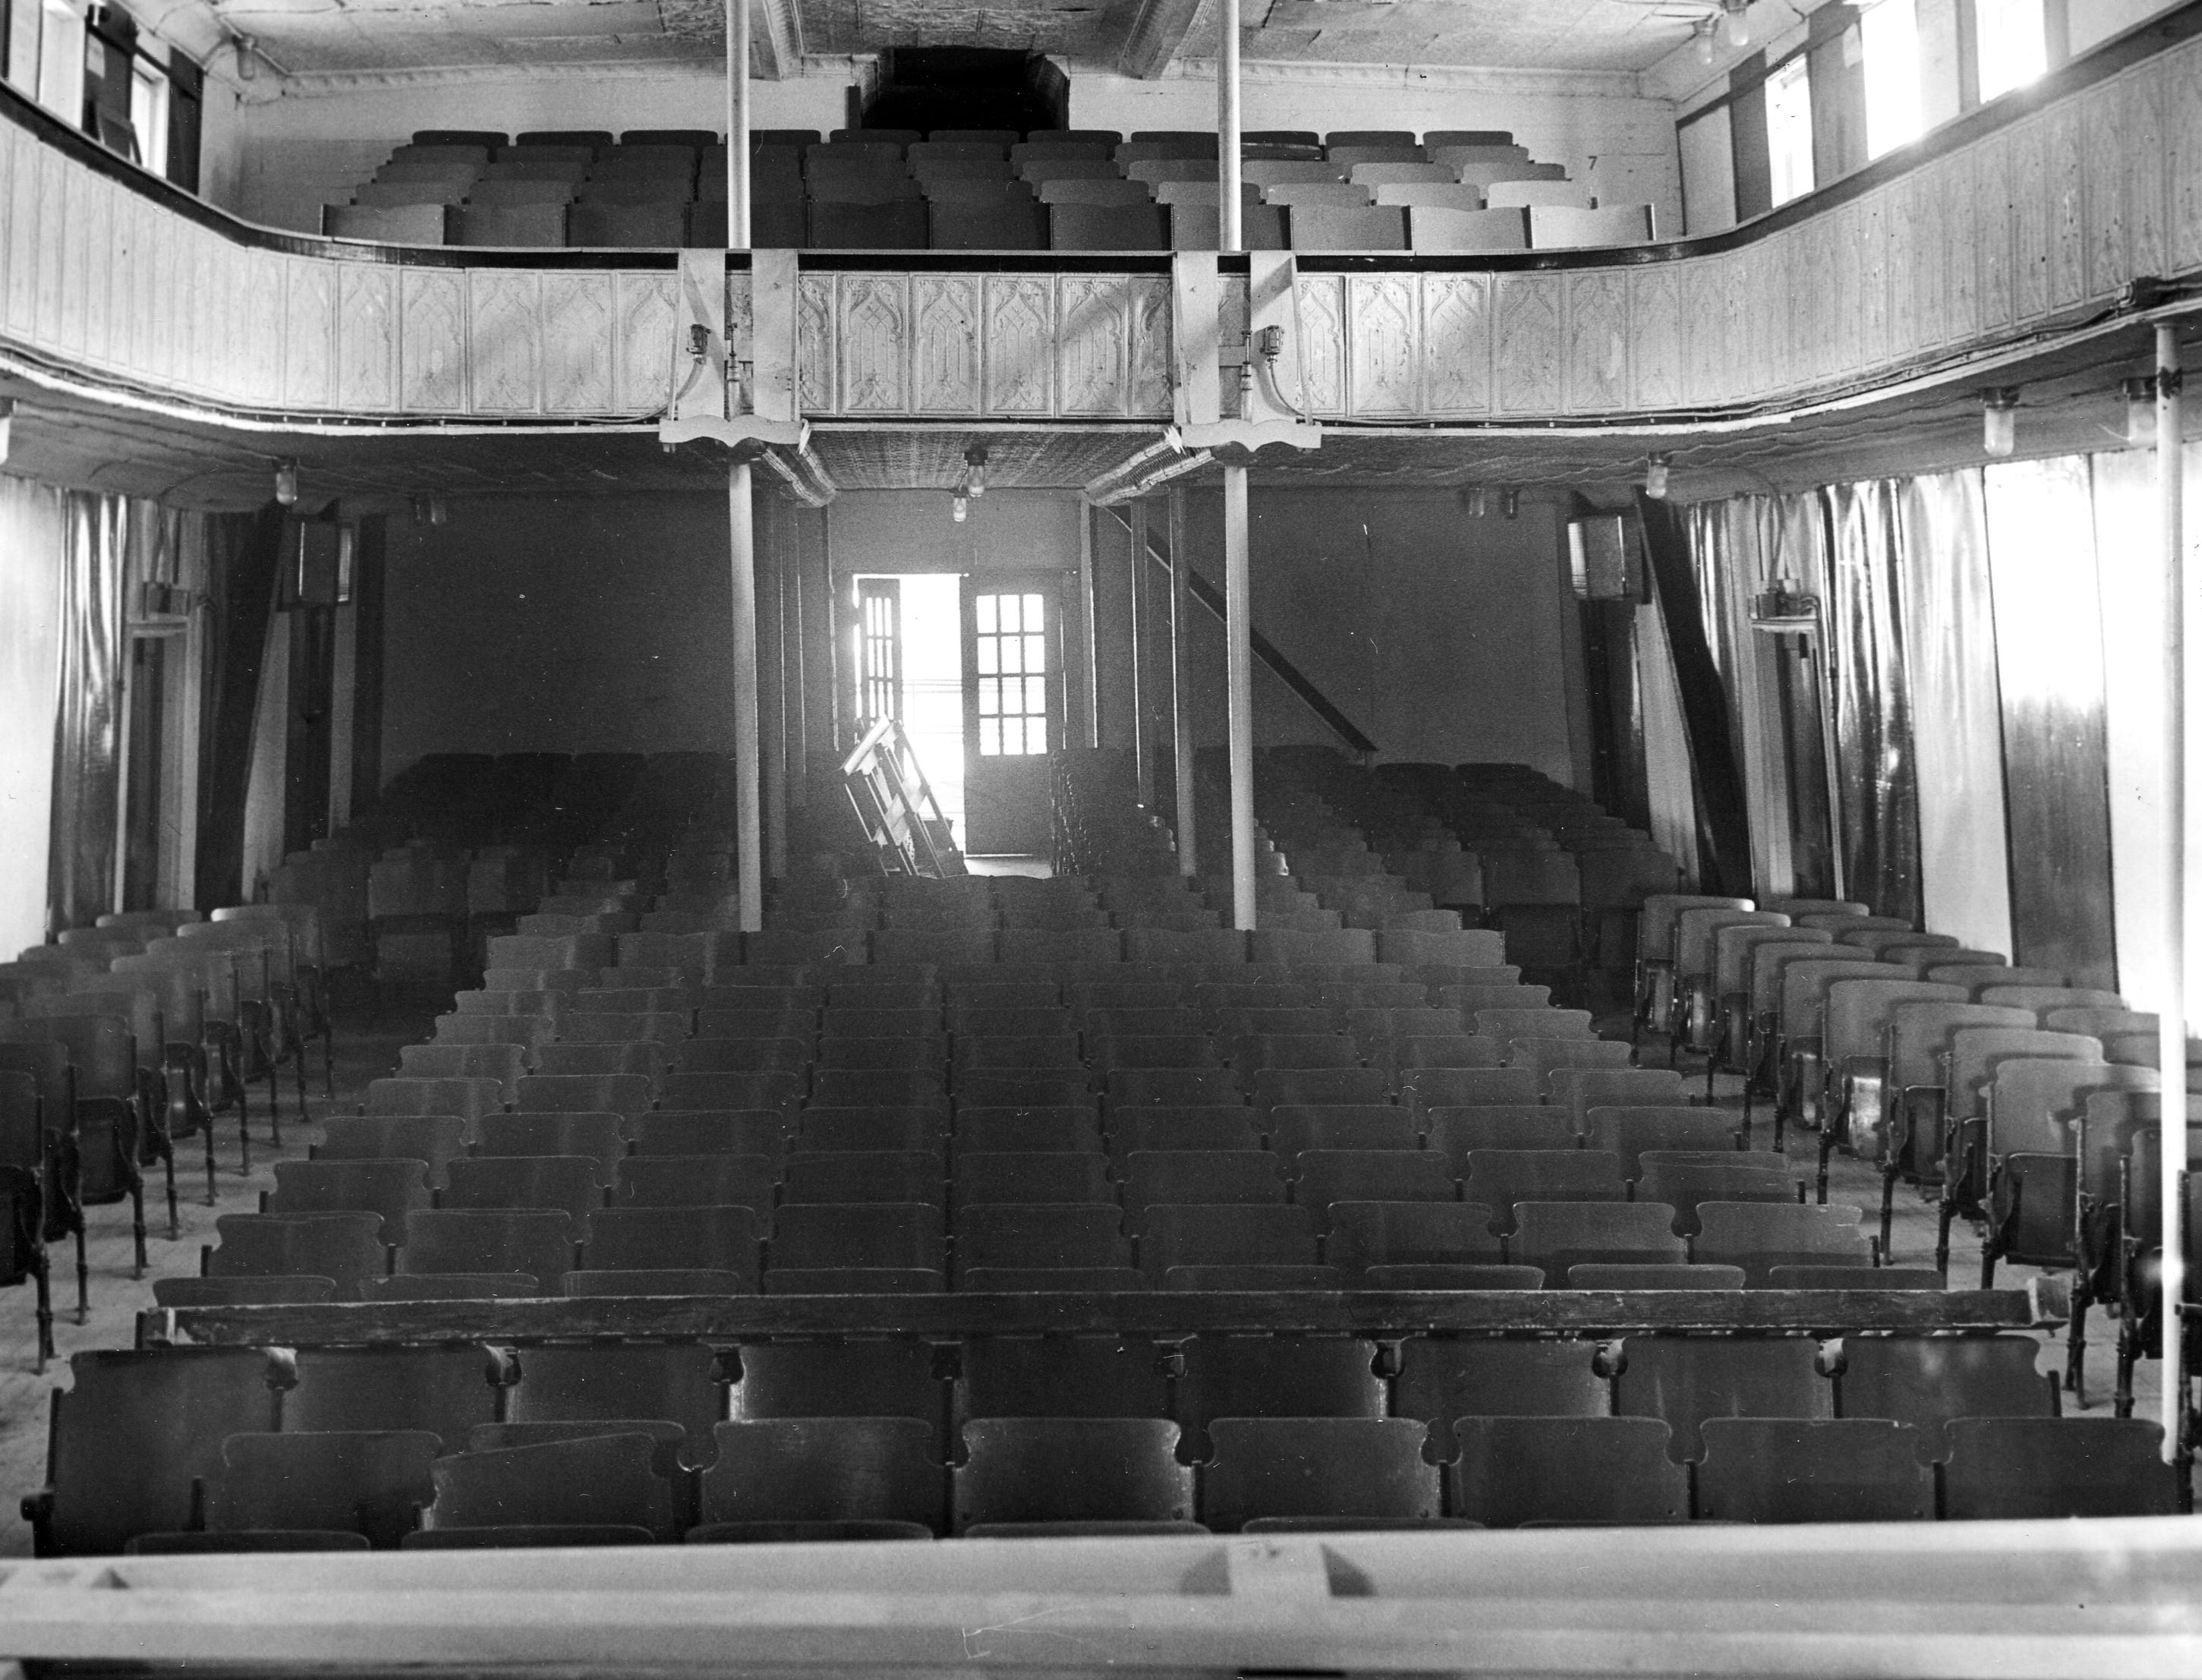 The theater of the Showboat Majestic when it was docked at Jeffersonville, Indiana. The showboat was purchased by the City of Cincinnati from Indiana University in 1967.